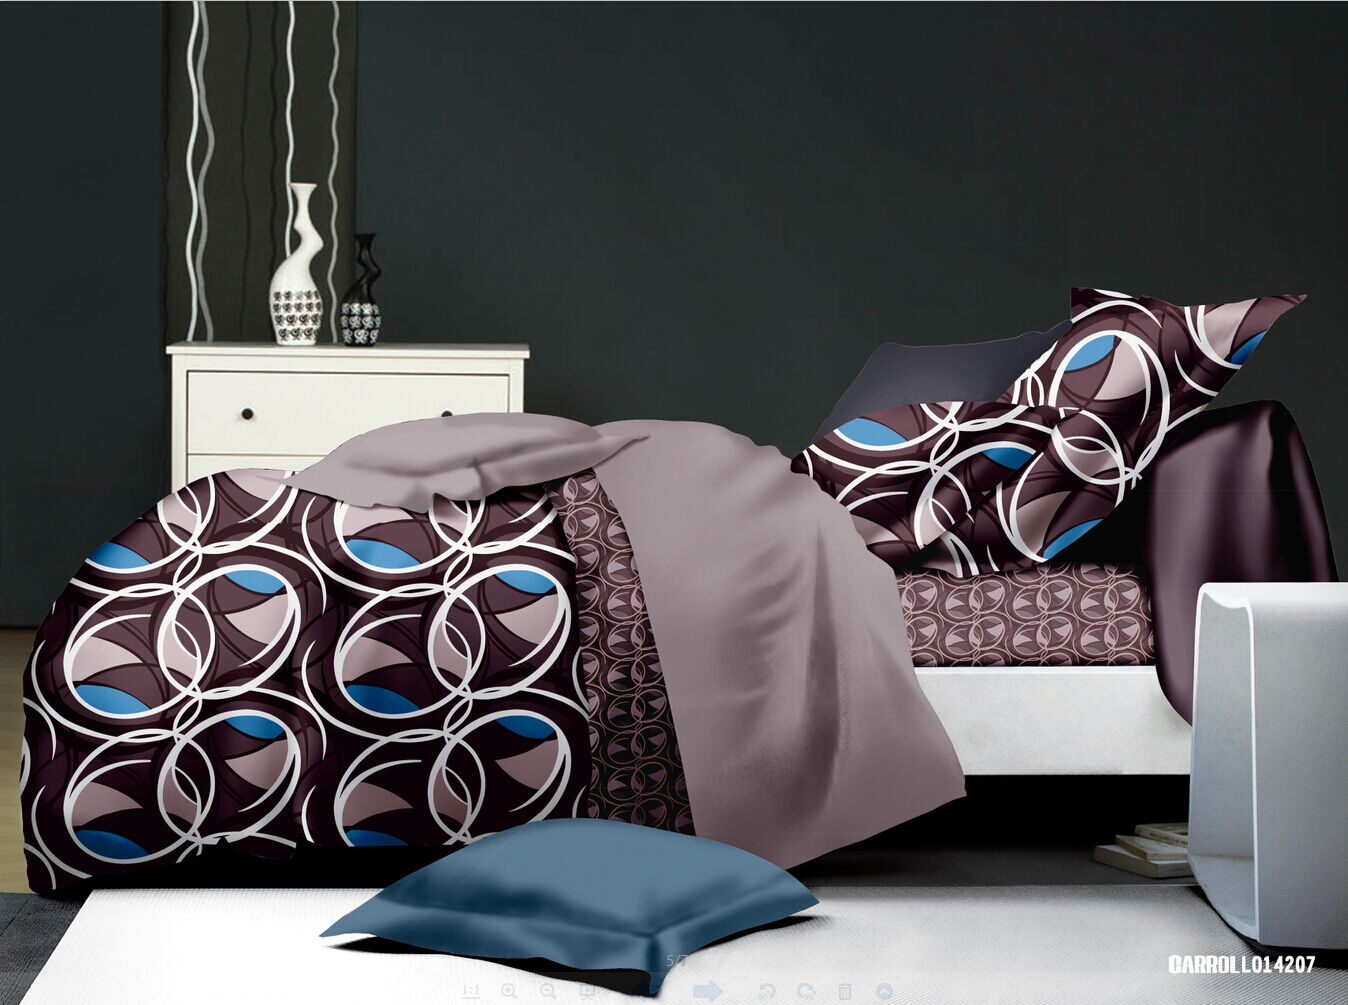 parure de draps imprim s sixties chocolat homemaison vente en ligne parures de lit. Black Bedroom Furniture Sets. Home Design Ideas